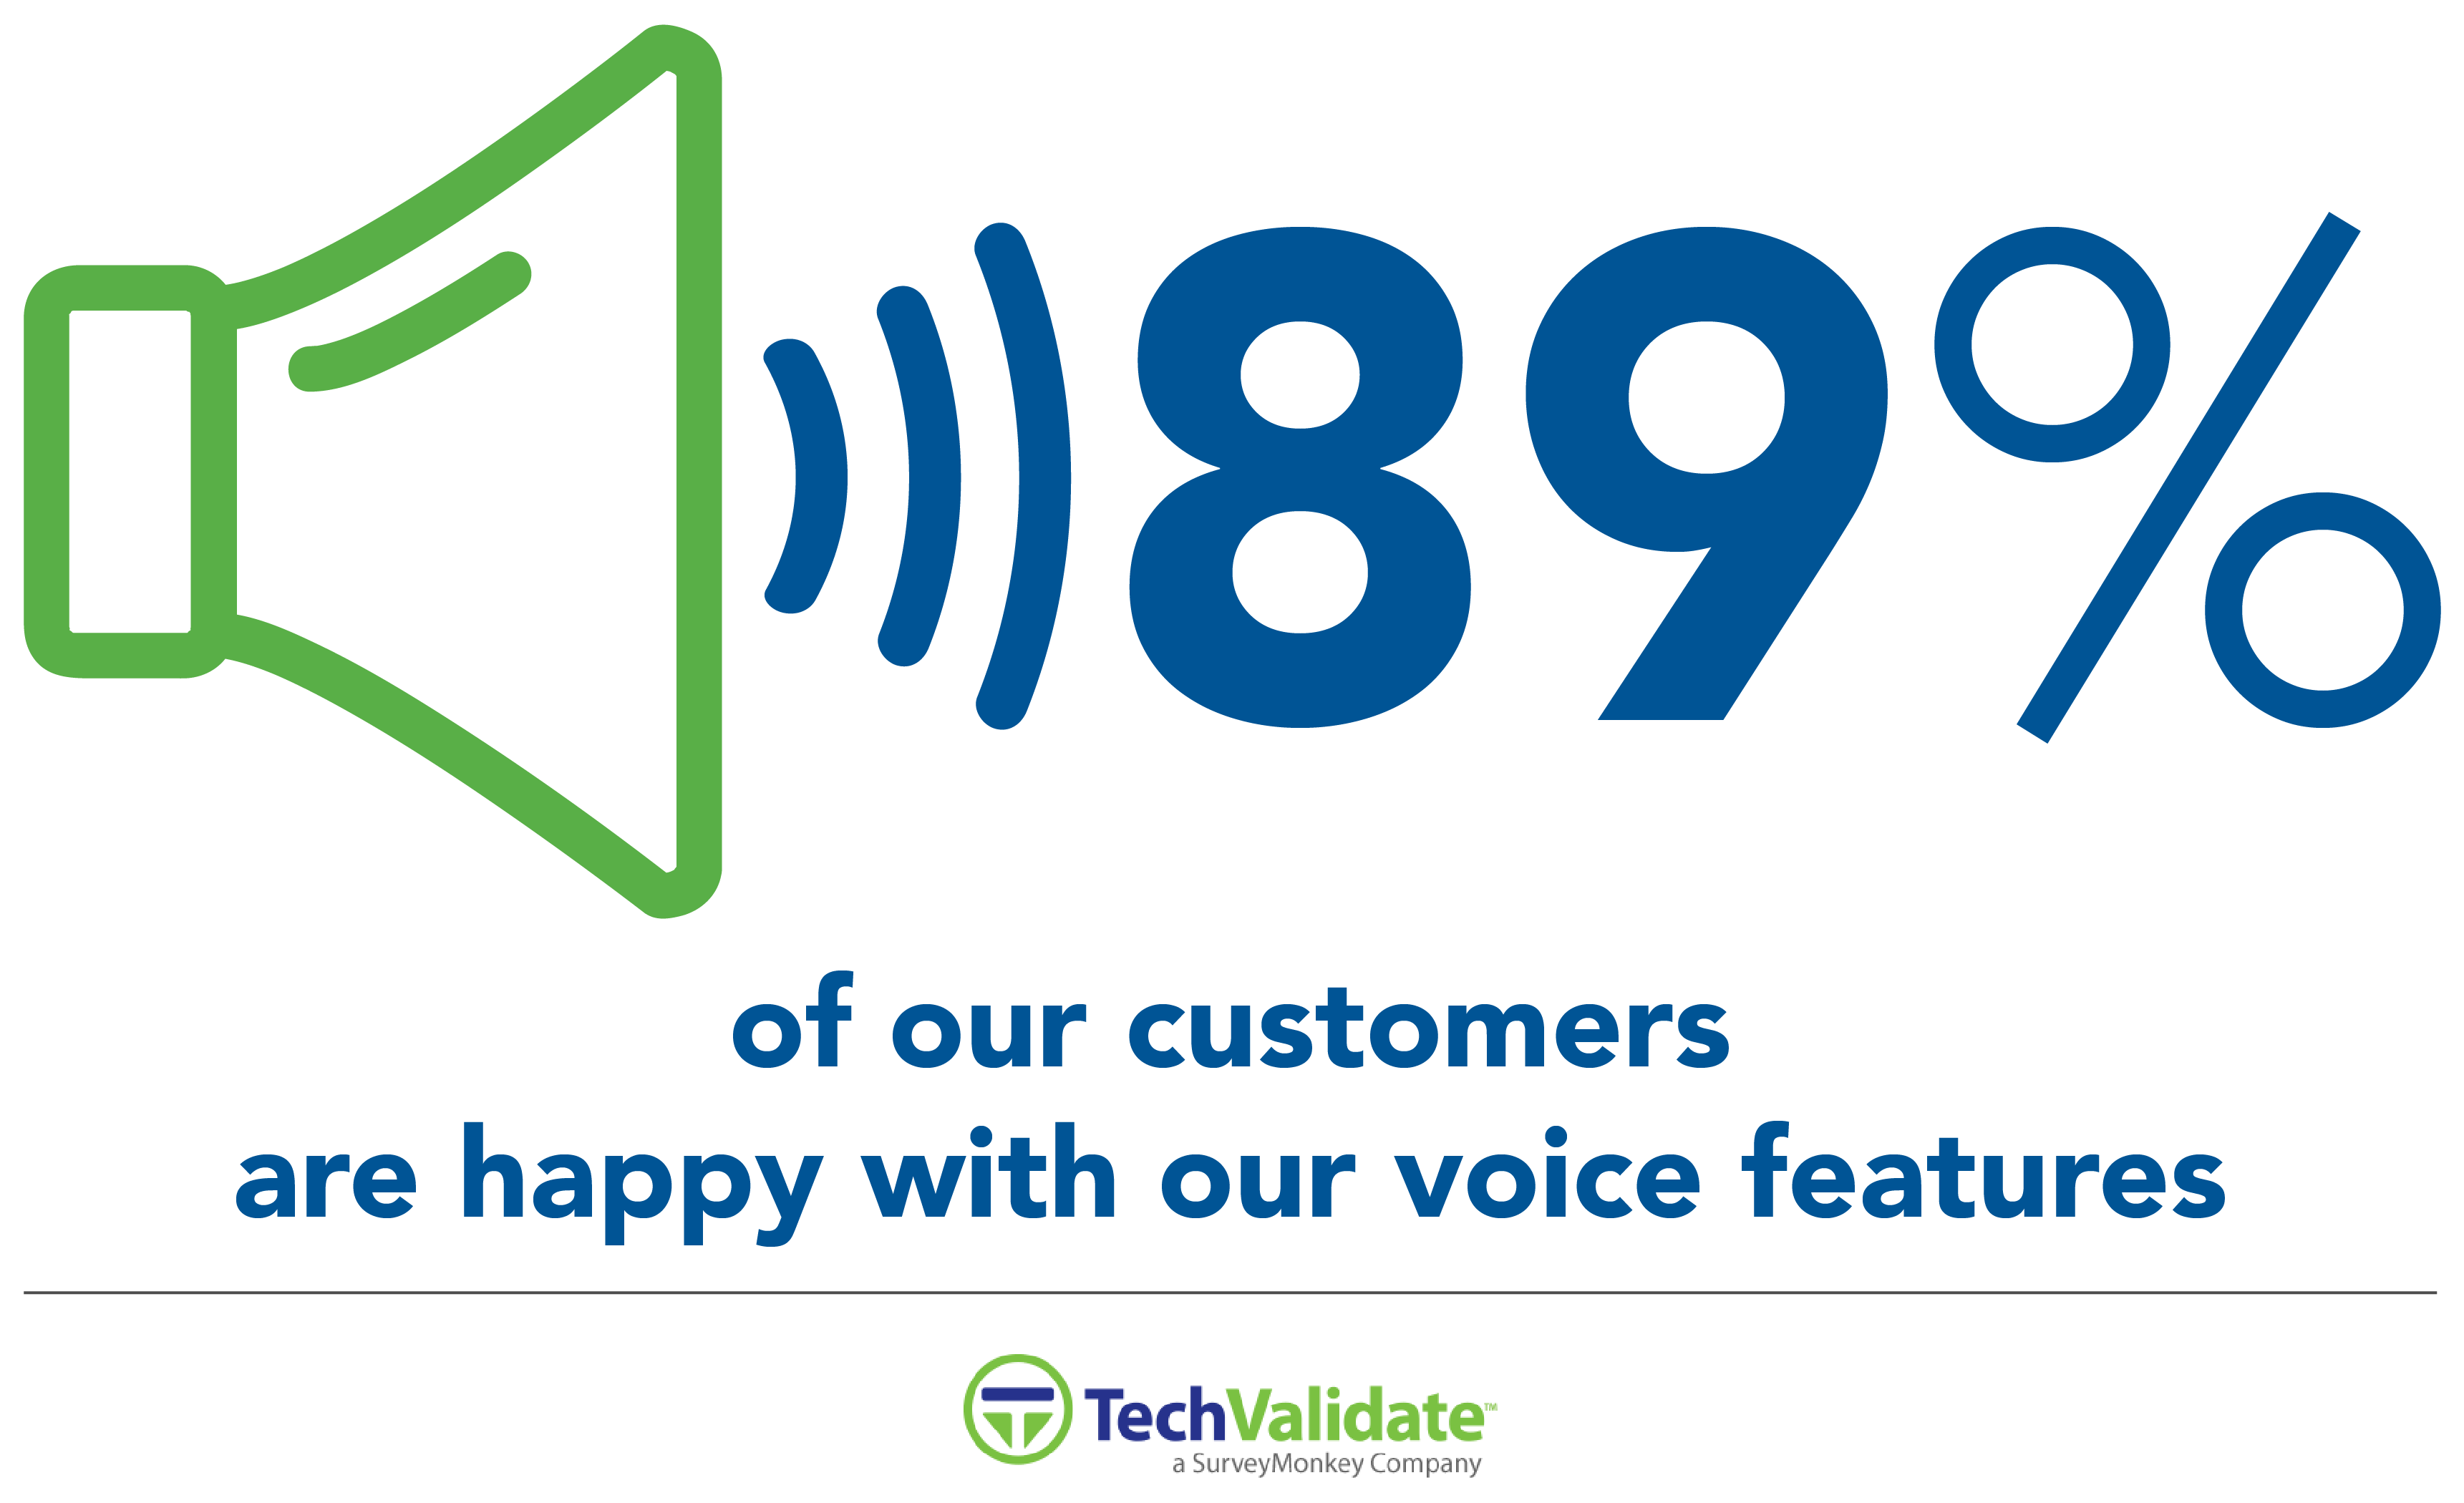 89% of Surveyed Customers Are Happy with Our Voice Features